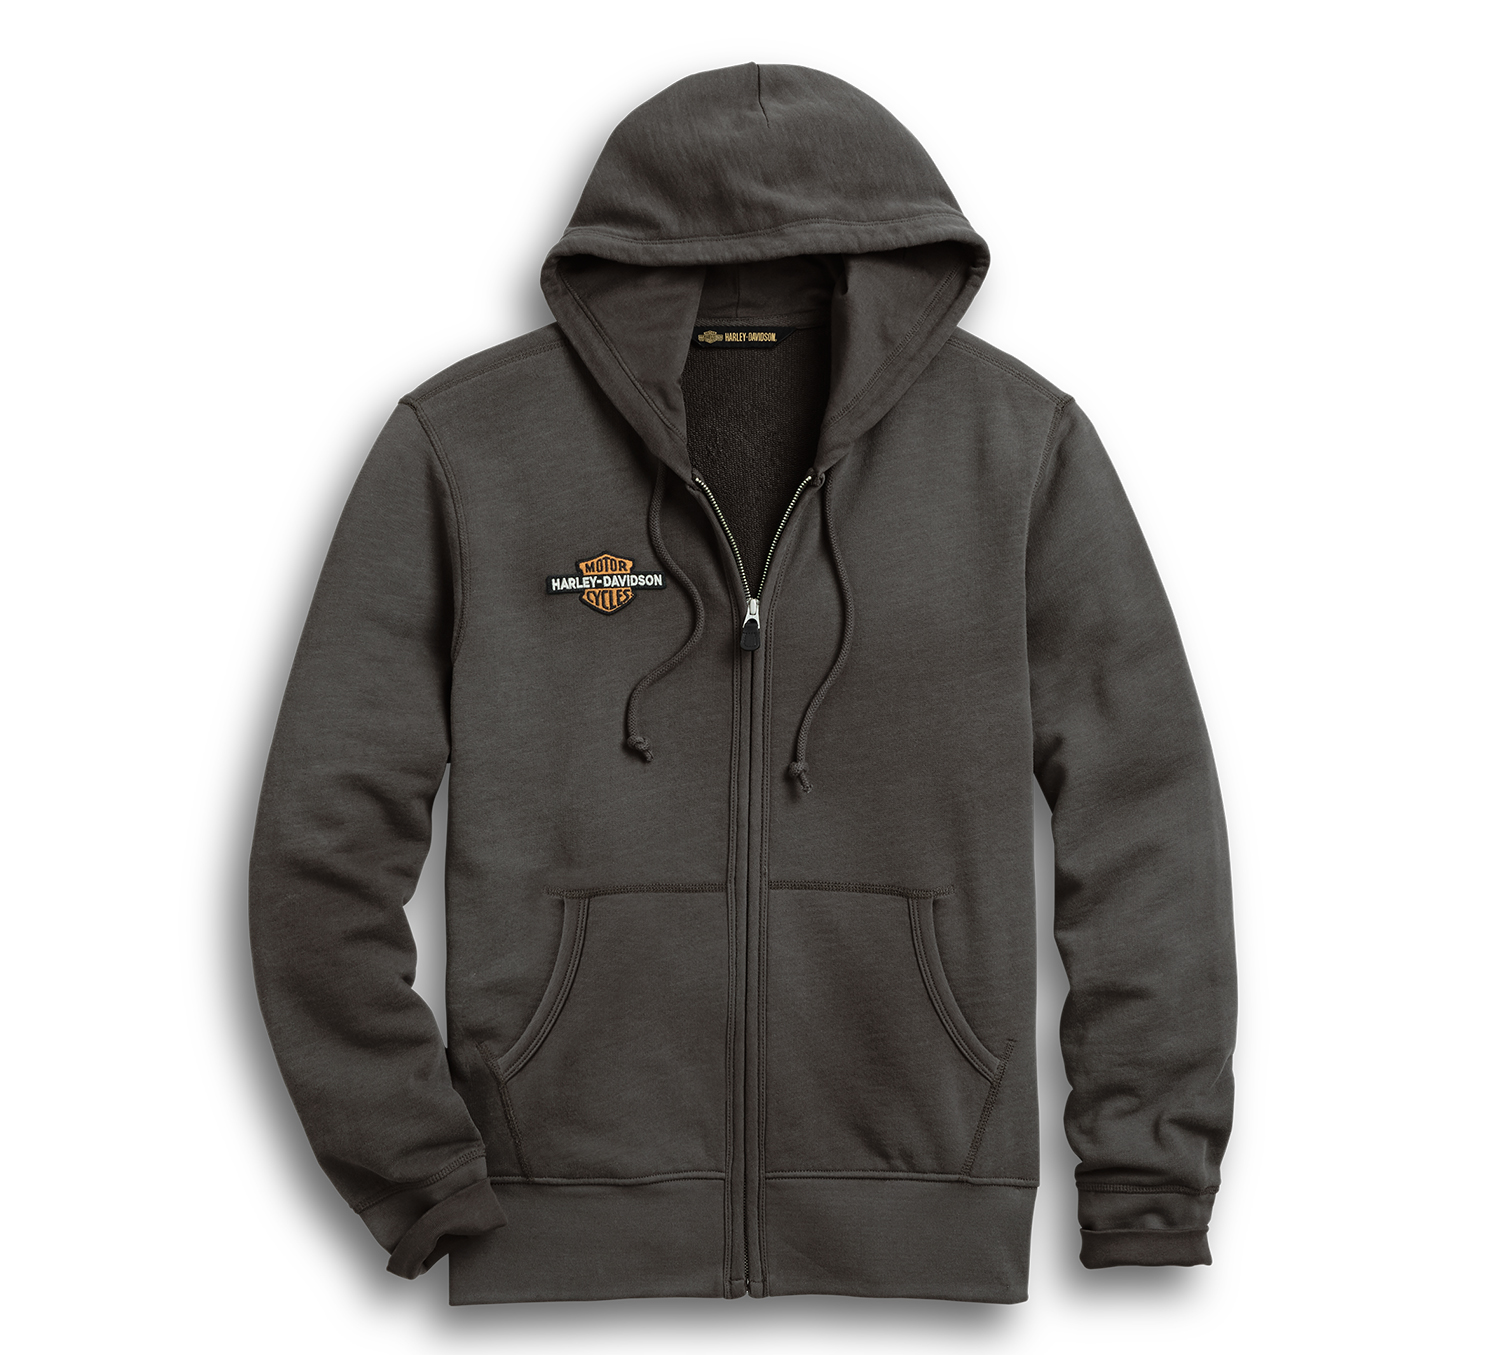 Harley-Davidson Men's Racing Circle Hoodie